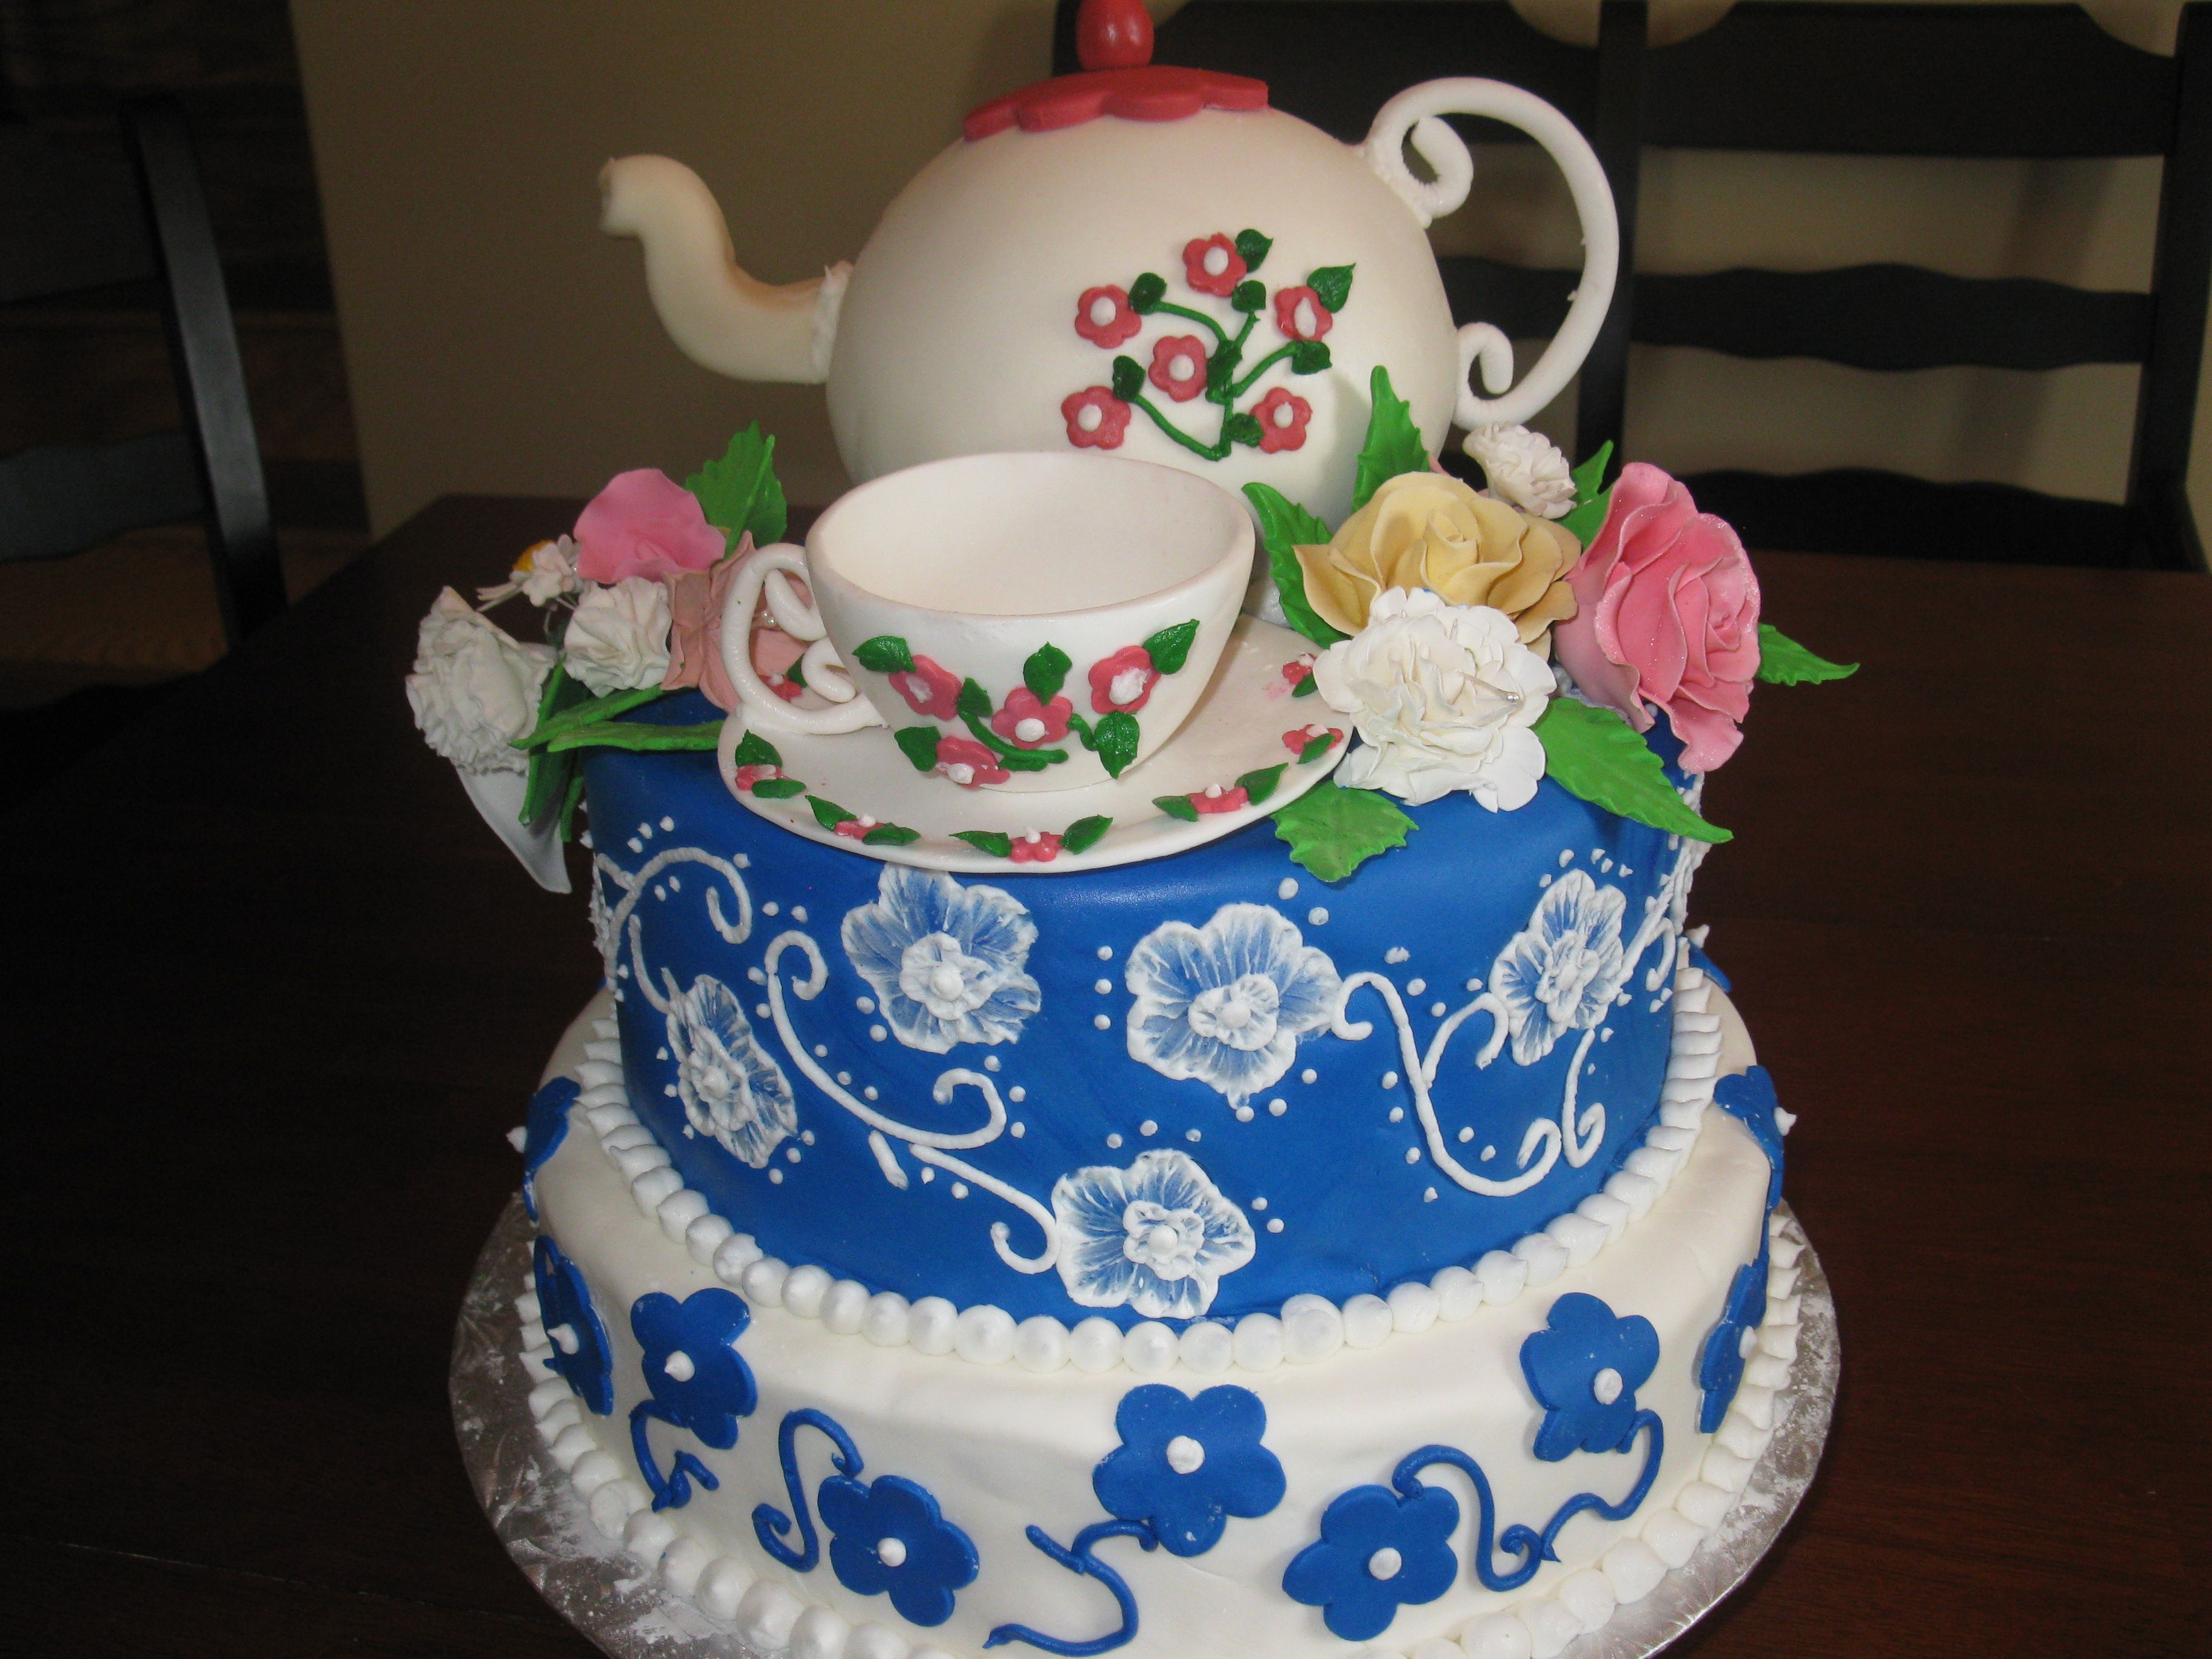 Birthday Cake With Gumpaste Teacup And Flowers